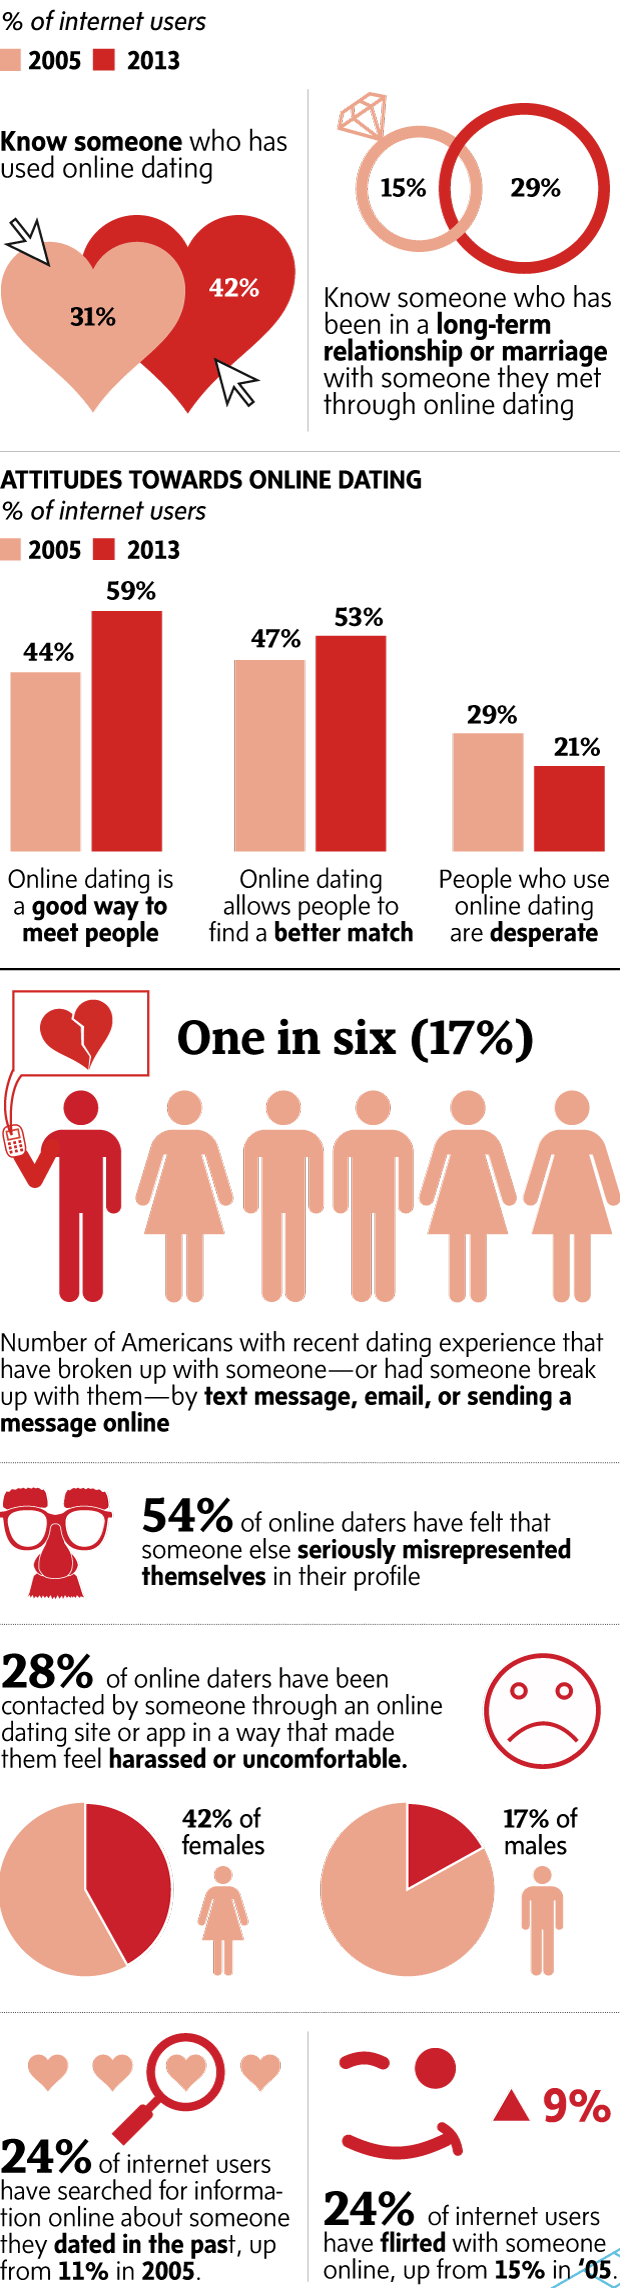 online dating stats 2013